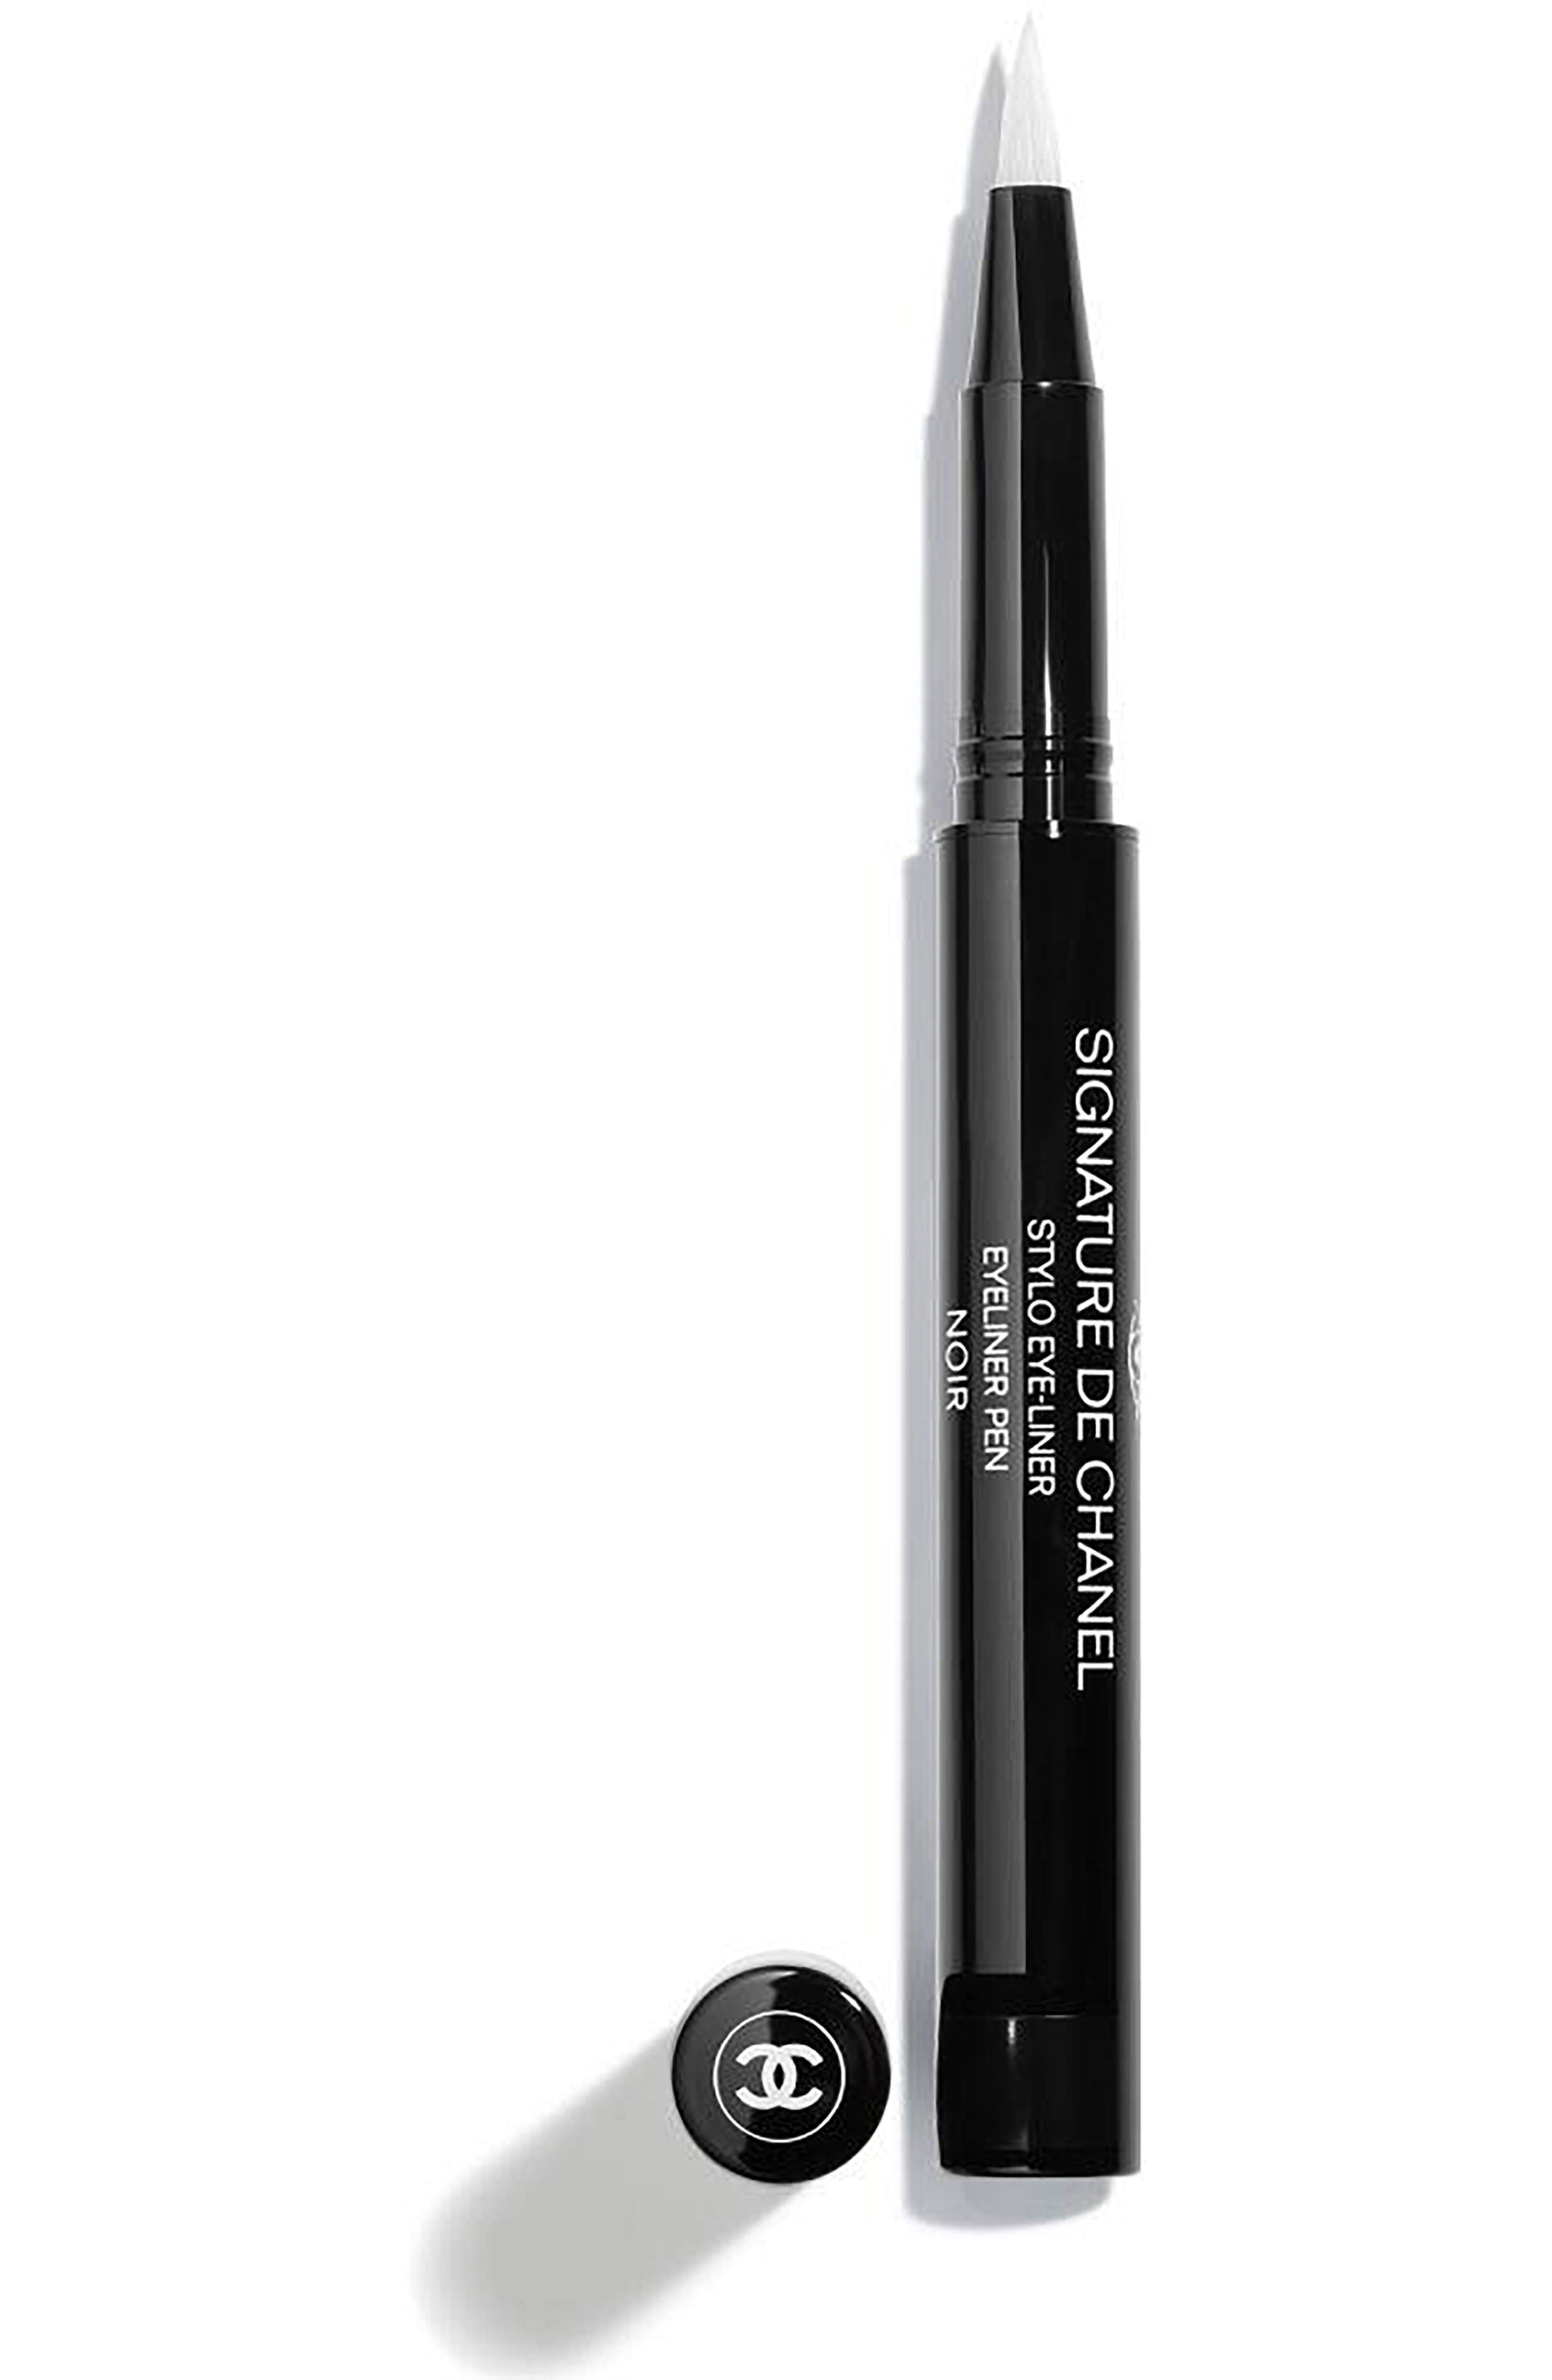 SIGNATURE DE CHANEL Intense Longwear Eyeliner Pen, Main, color, NO COLOR